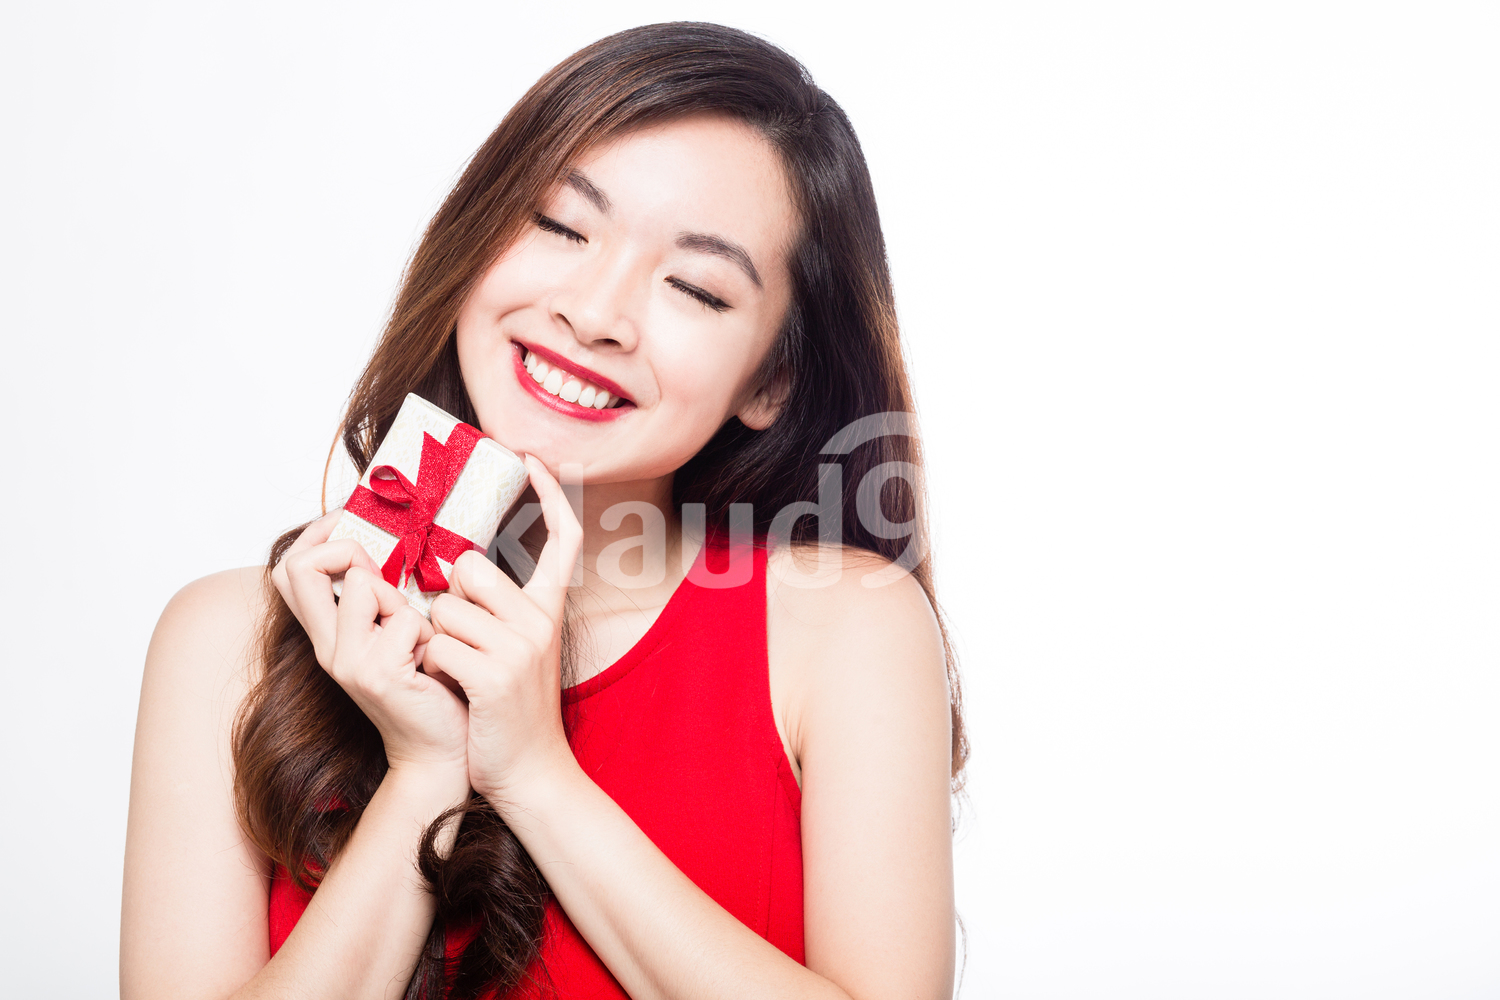 Woman with a gift box with her eyes close